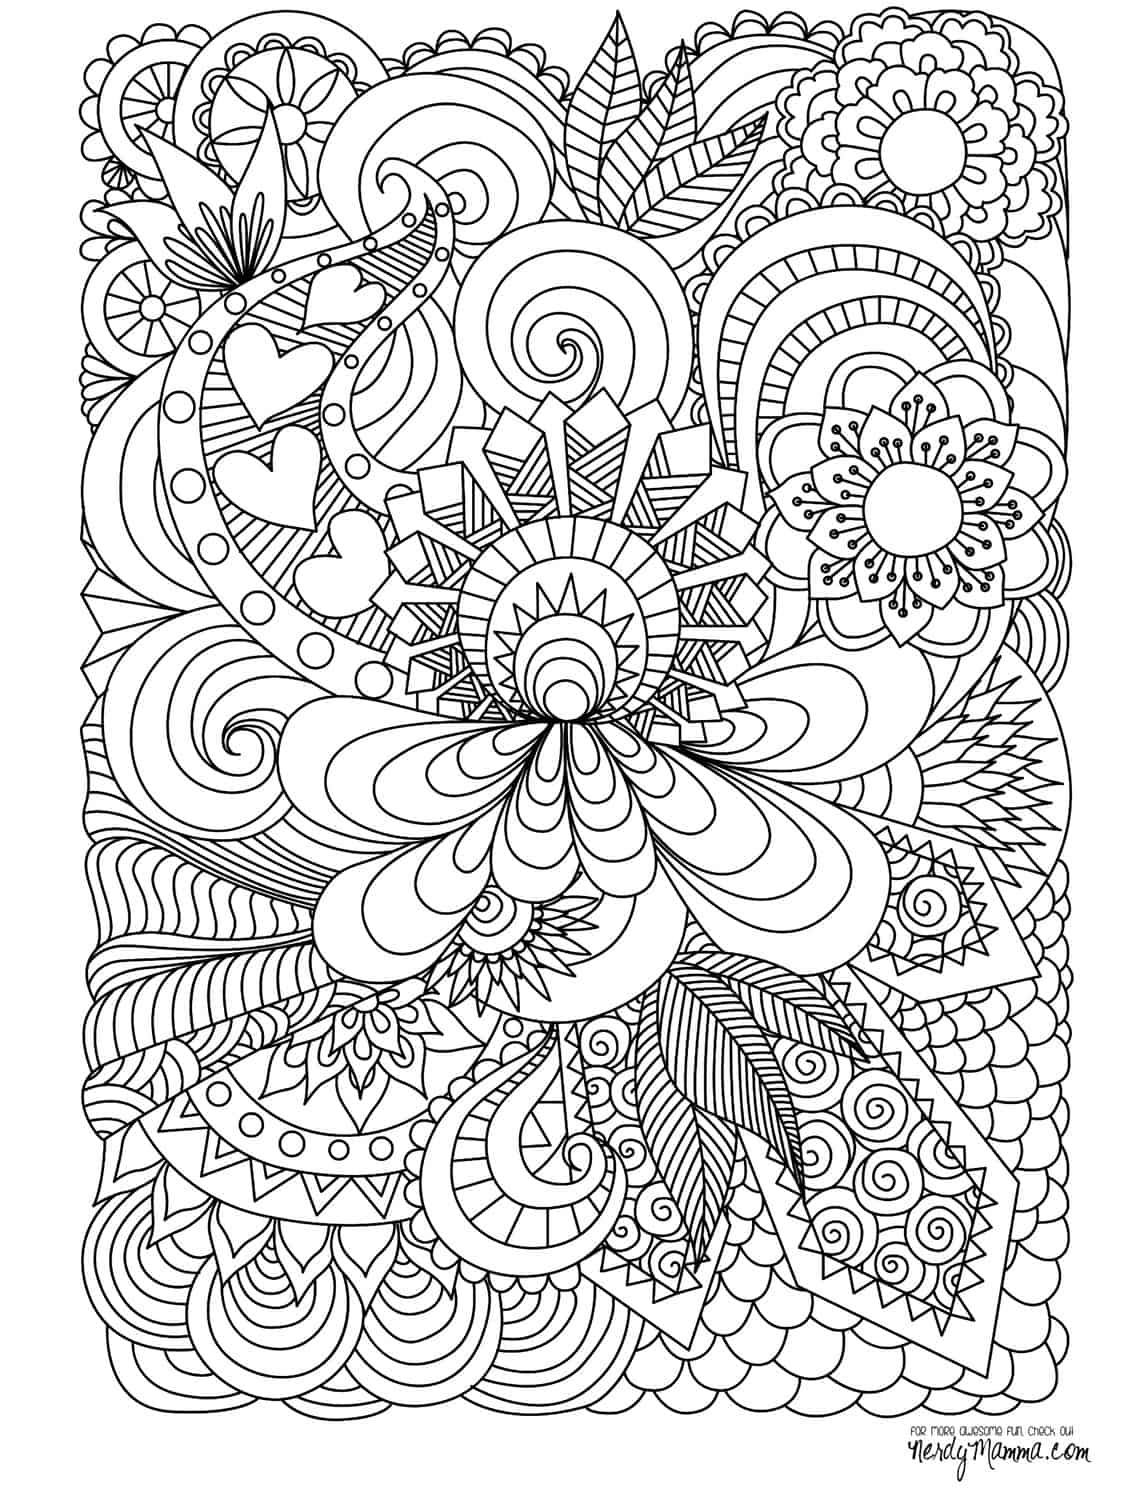 11 Free Printable Adult Coloring Pages Coloring Book For Adults Free